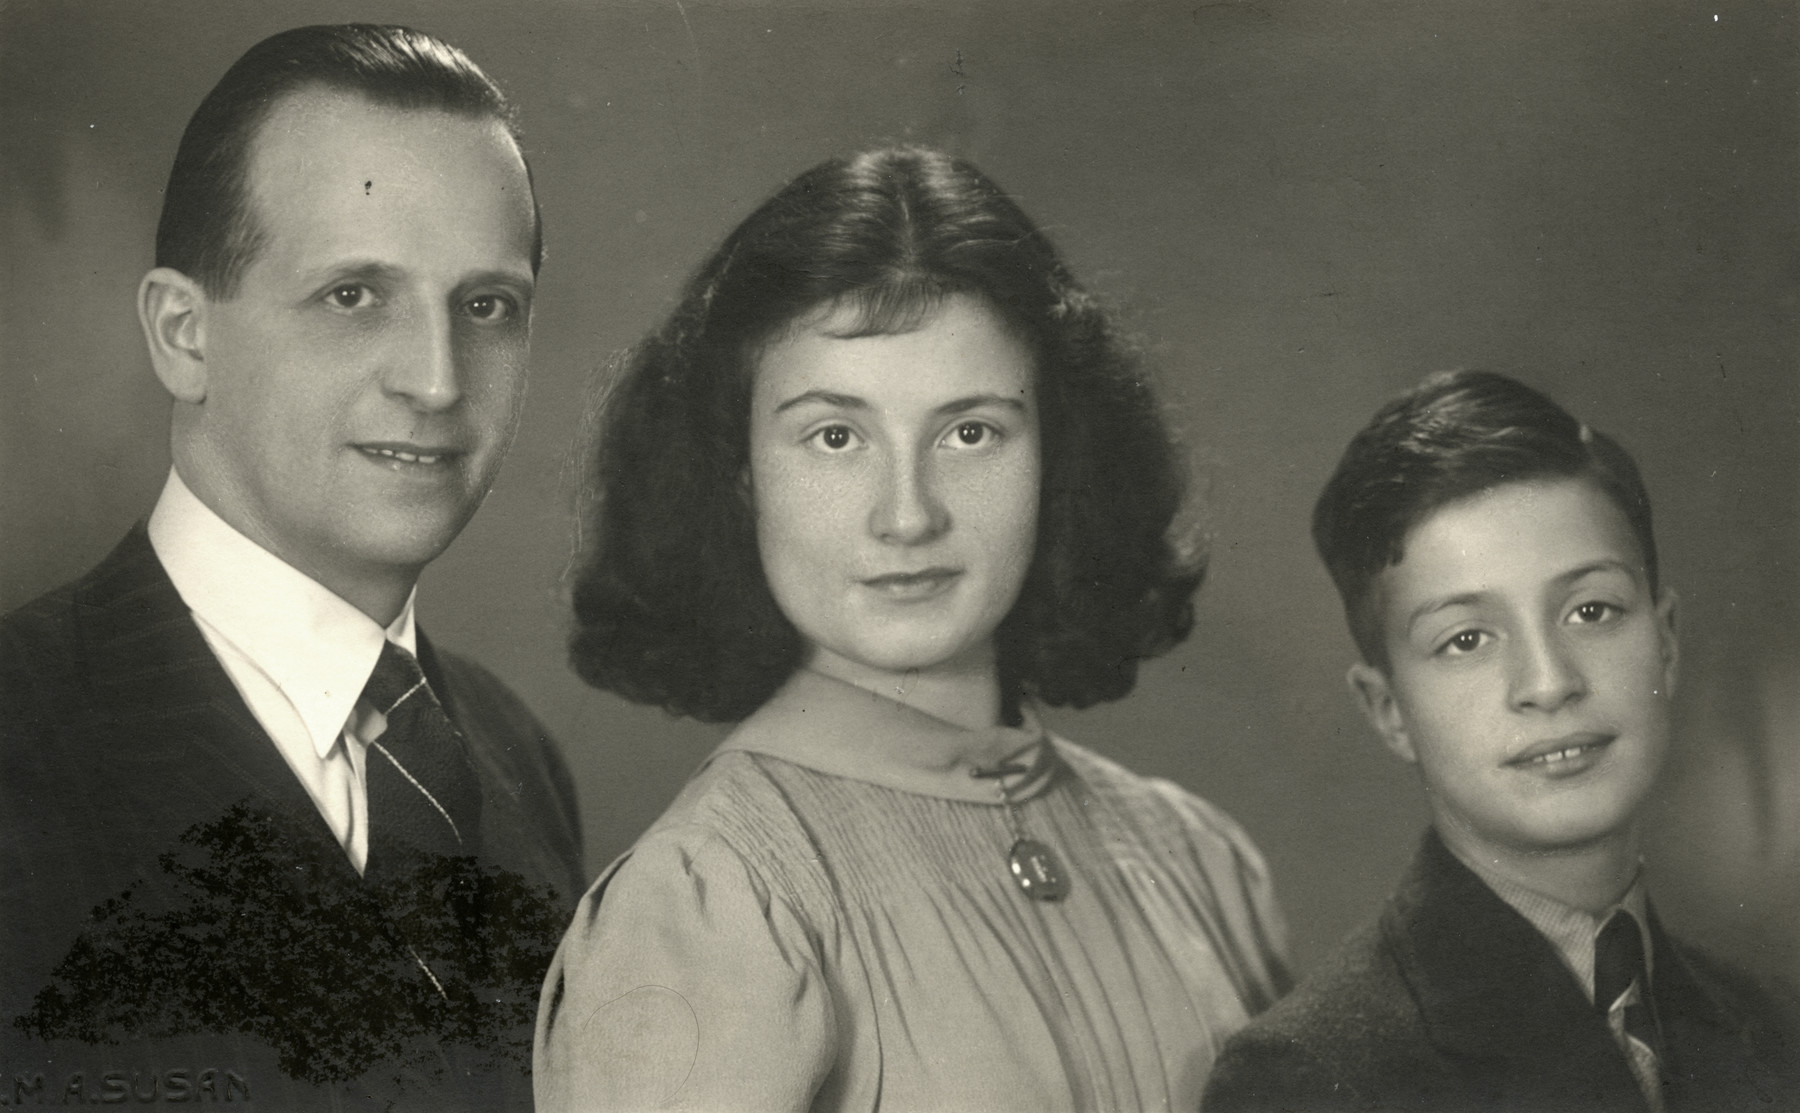 Studio portrait of David Cohen-Pariara with his two children Ellis and Bram.